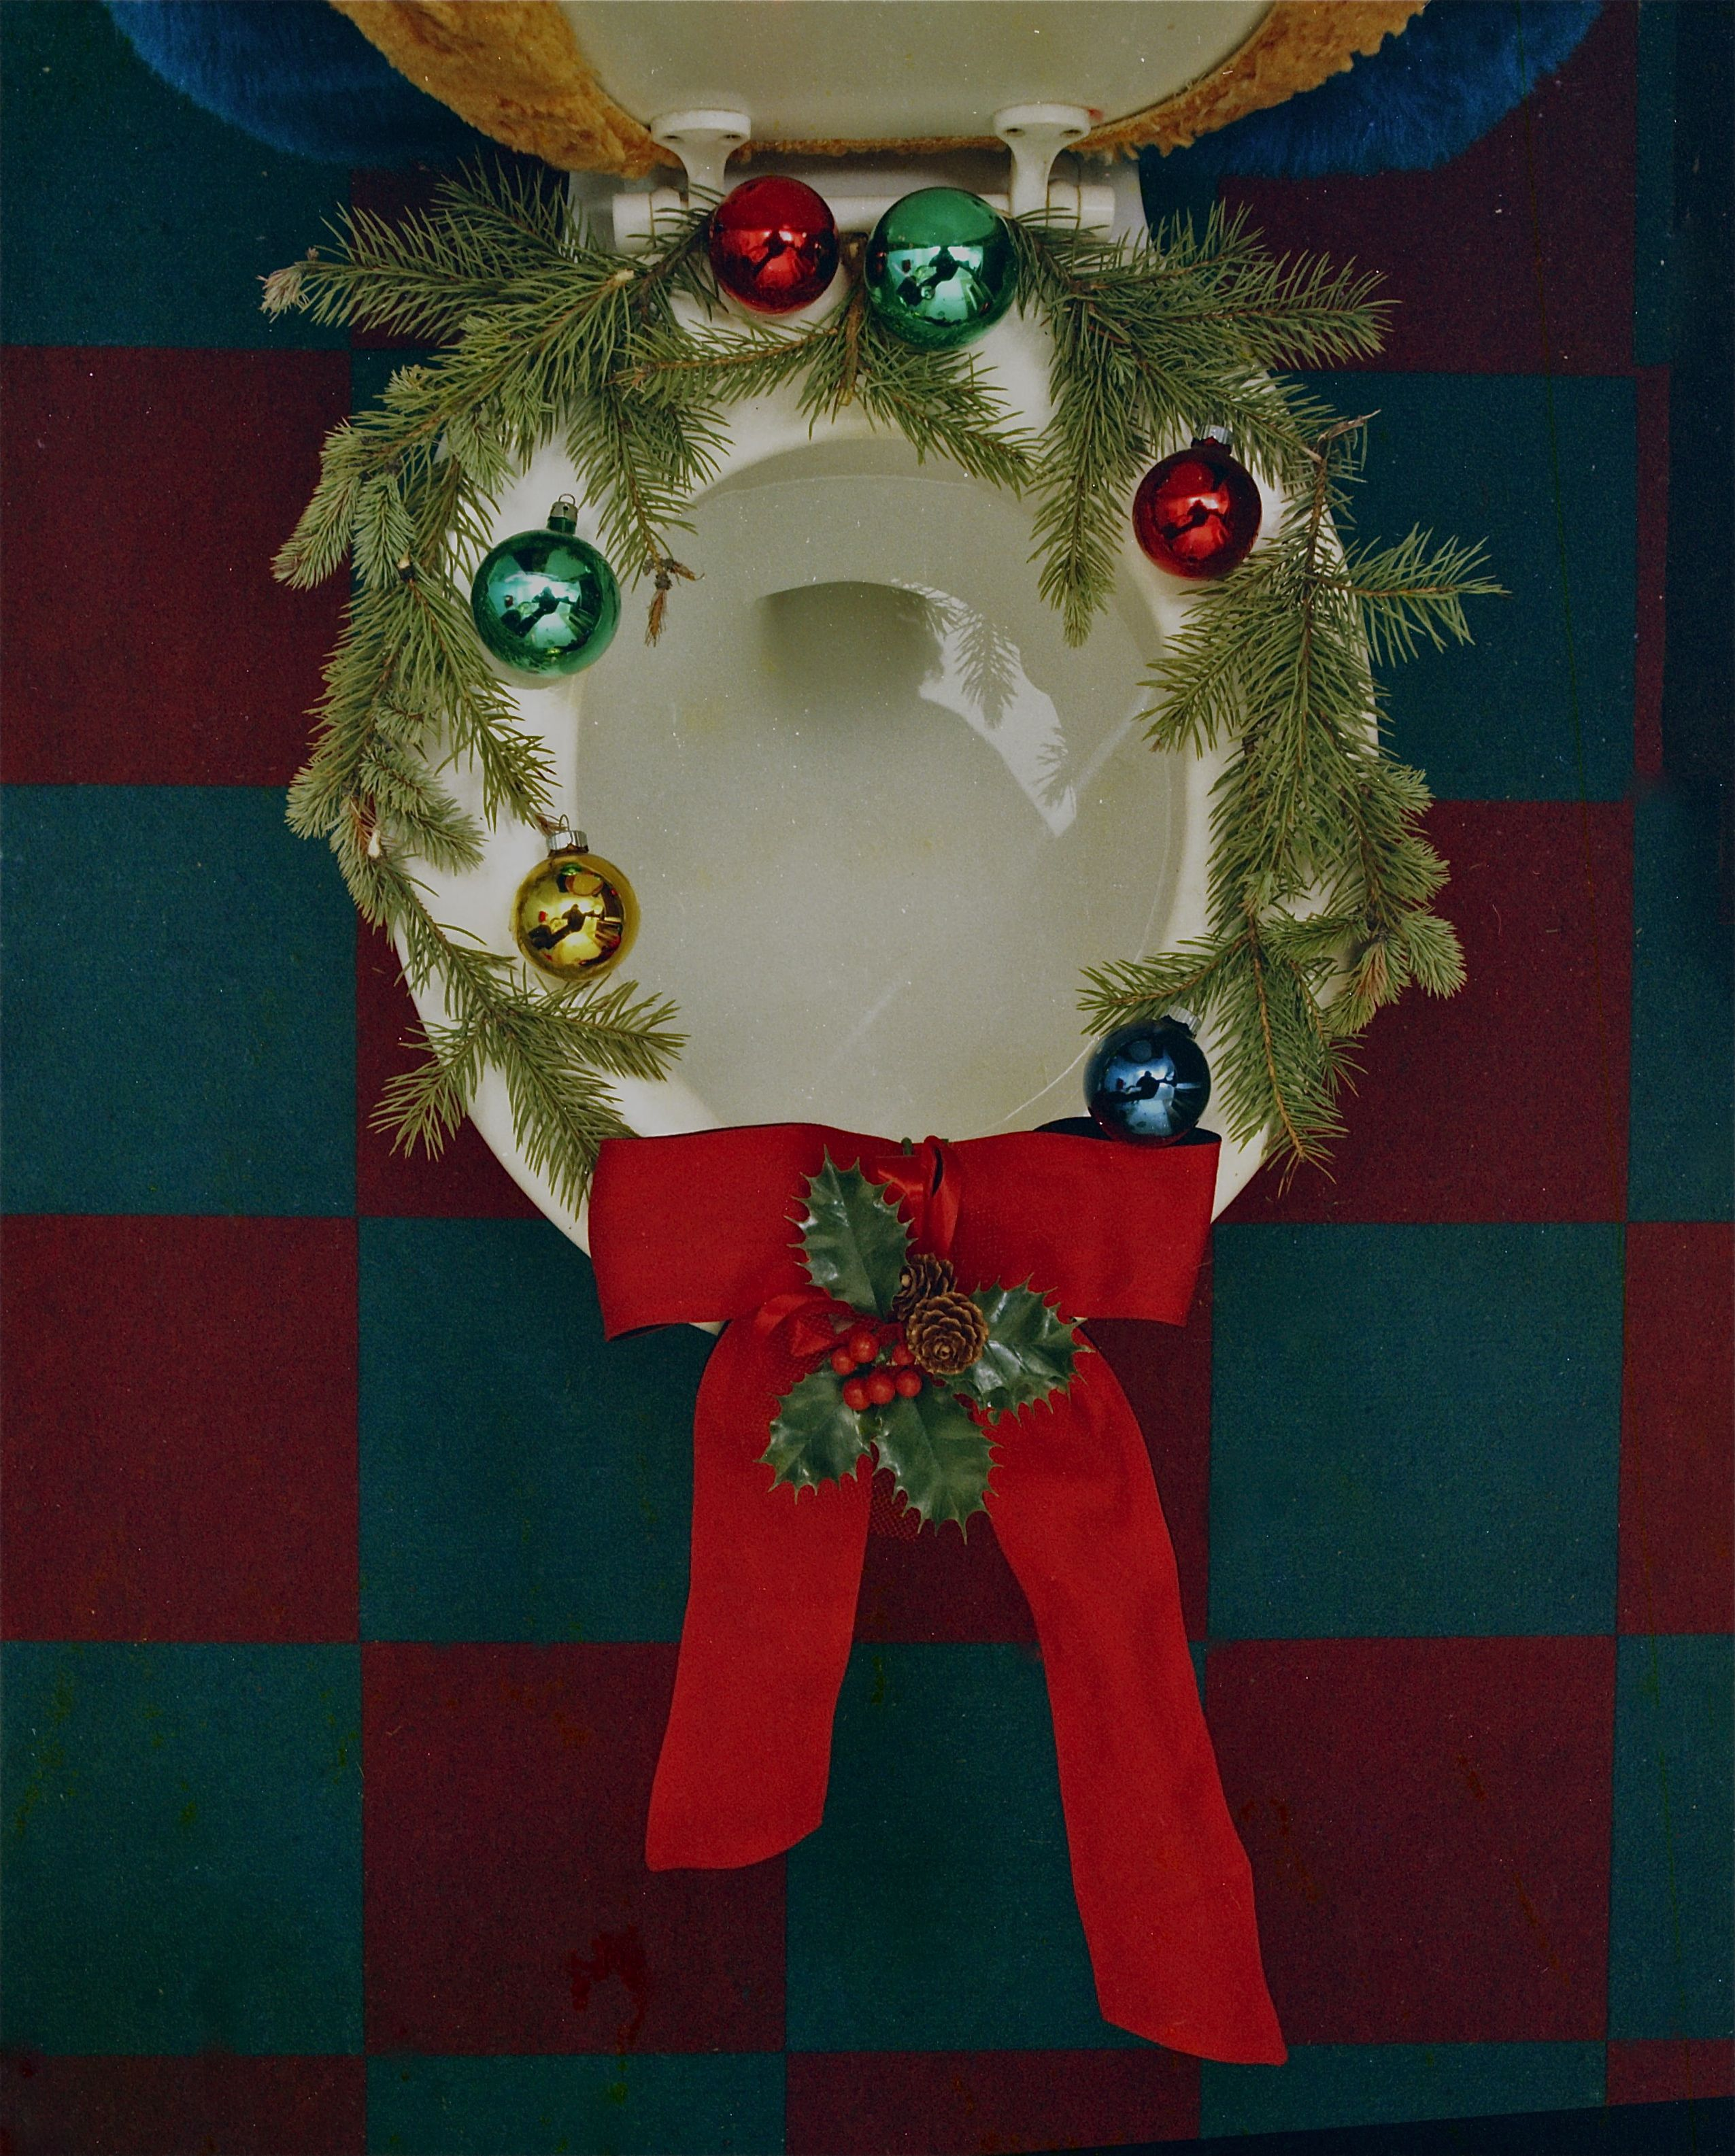 Toilet seat decorated as a Xmas wreath